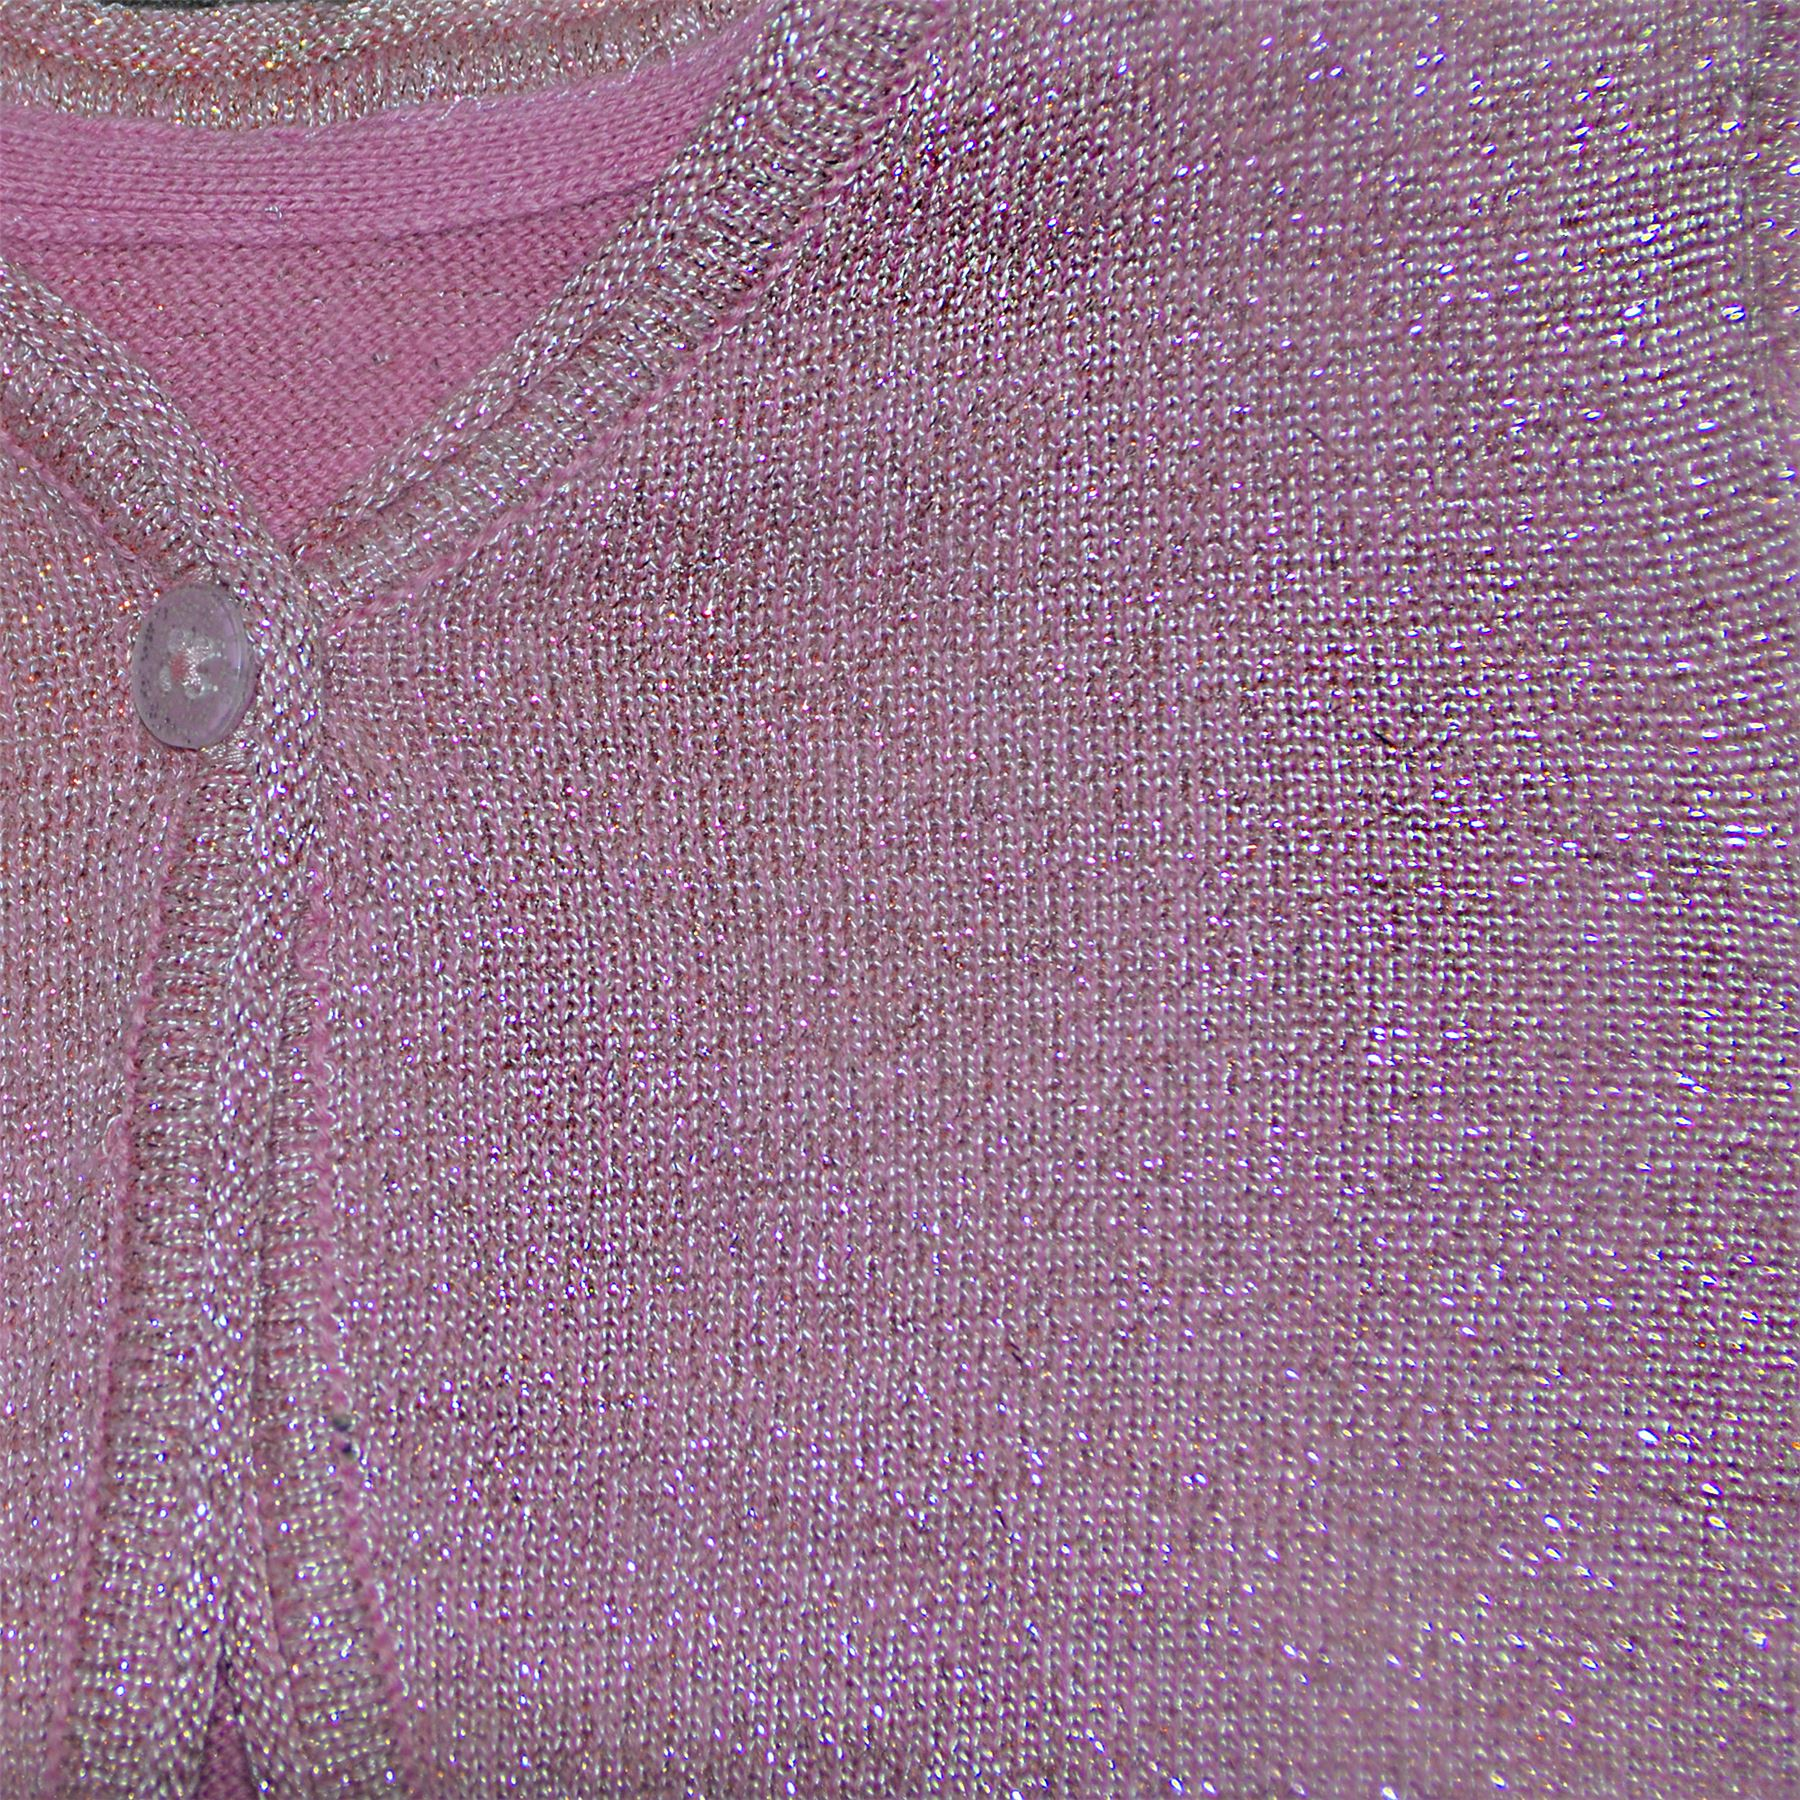 Girls-Glitter-Effect-Knitted-Shrug-Kids-Long-Sleeve-Bolero-Top-Lurex-Cardigan thumbnail 7